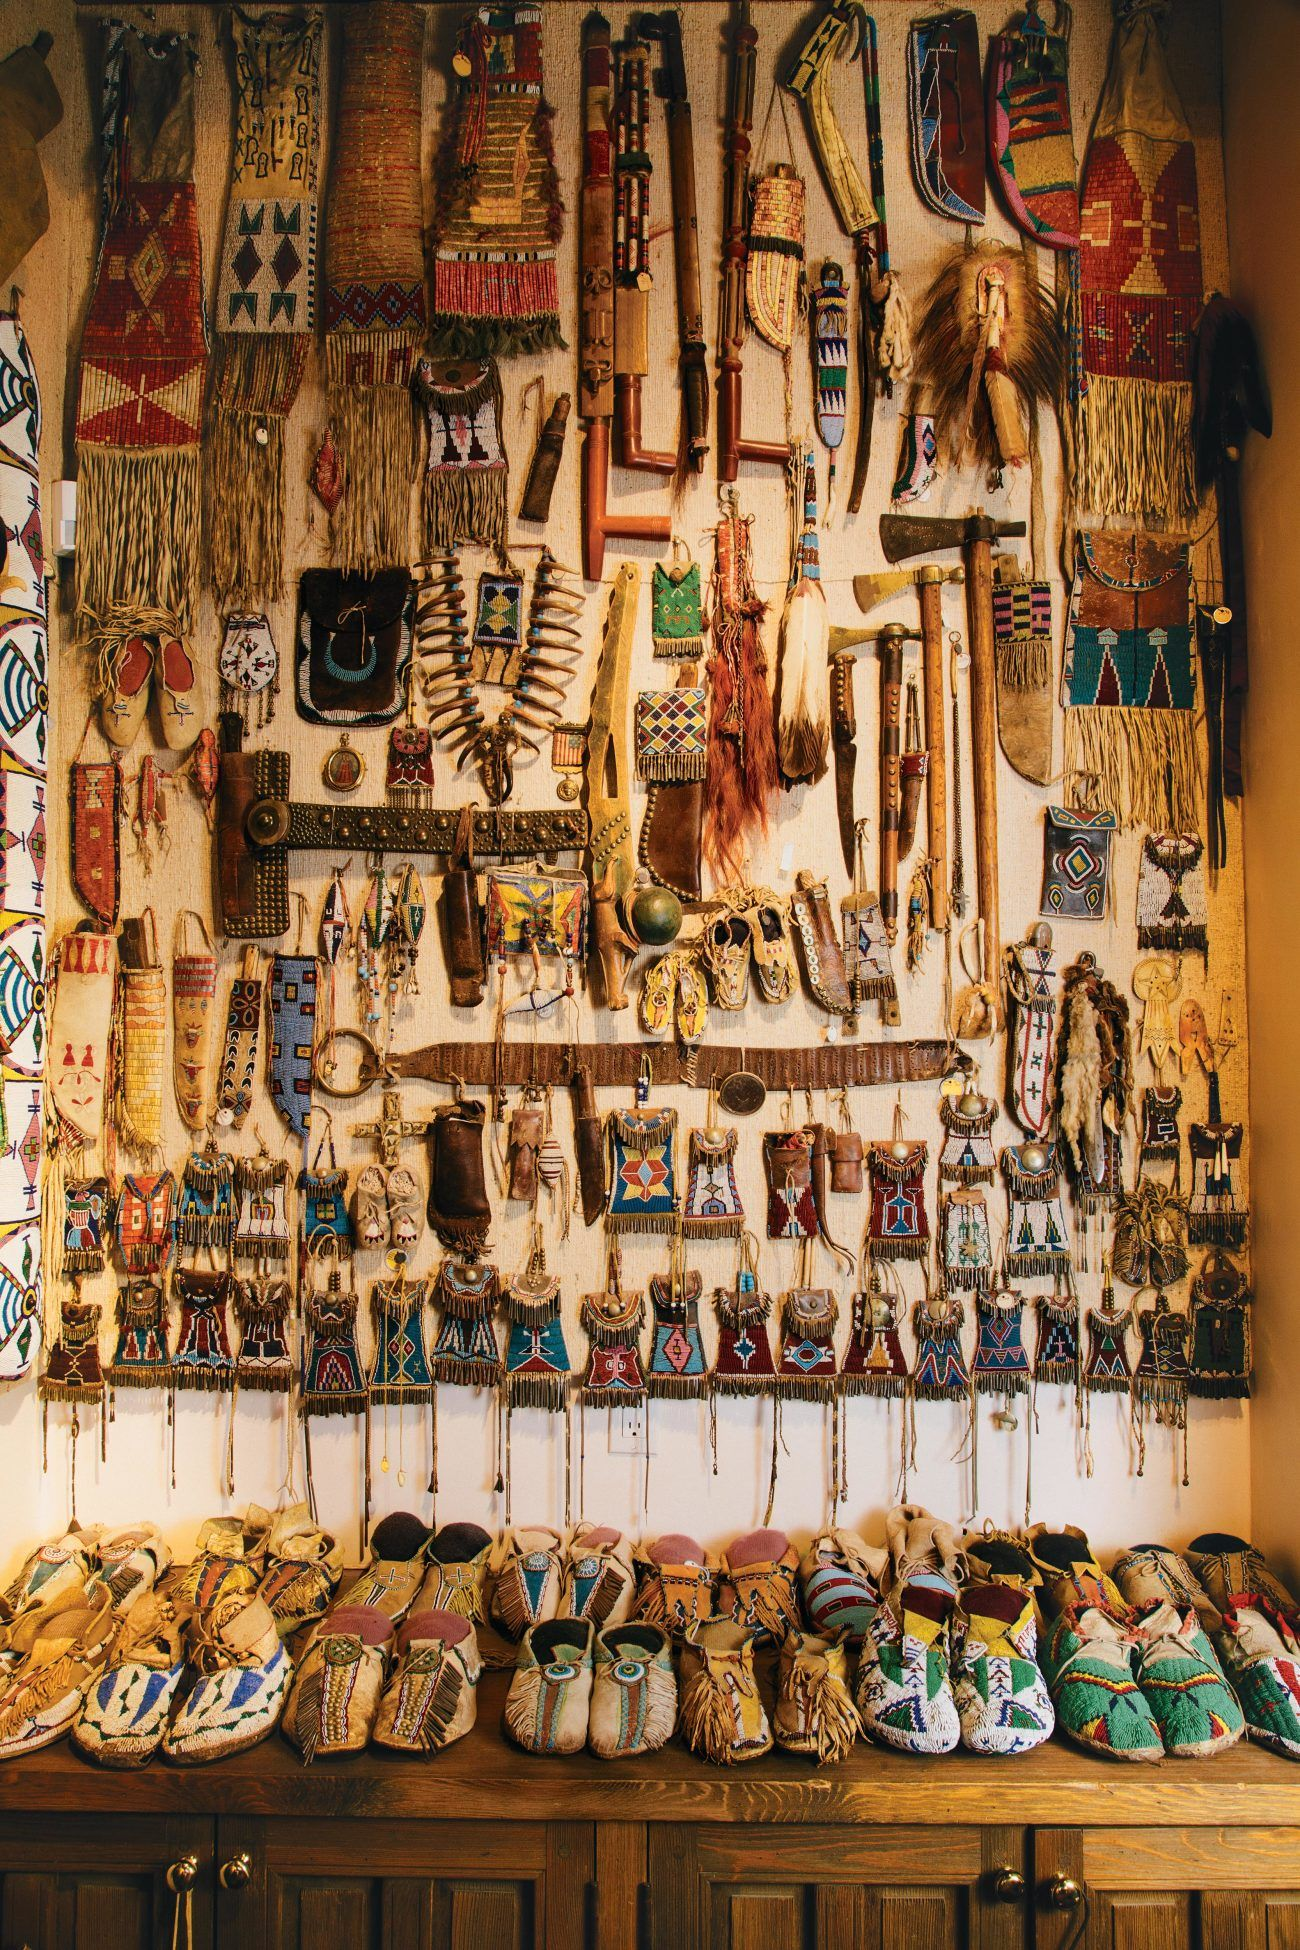 p>Part of Forrest Fenn's collection of American Indian artifacts</p